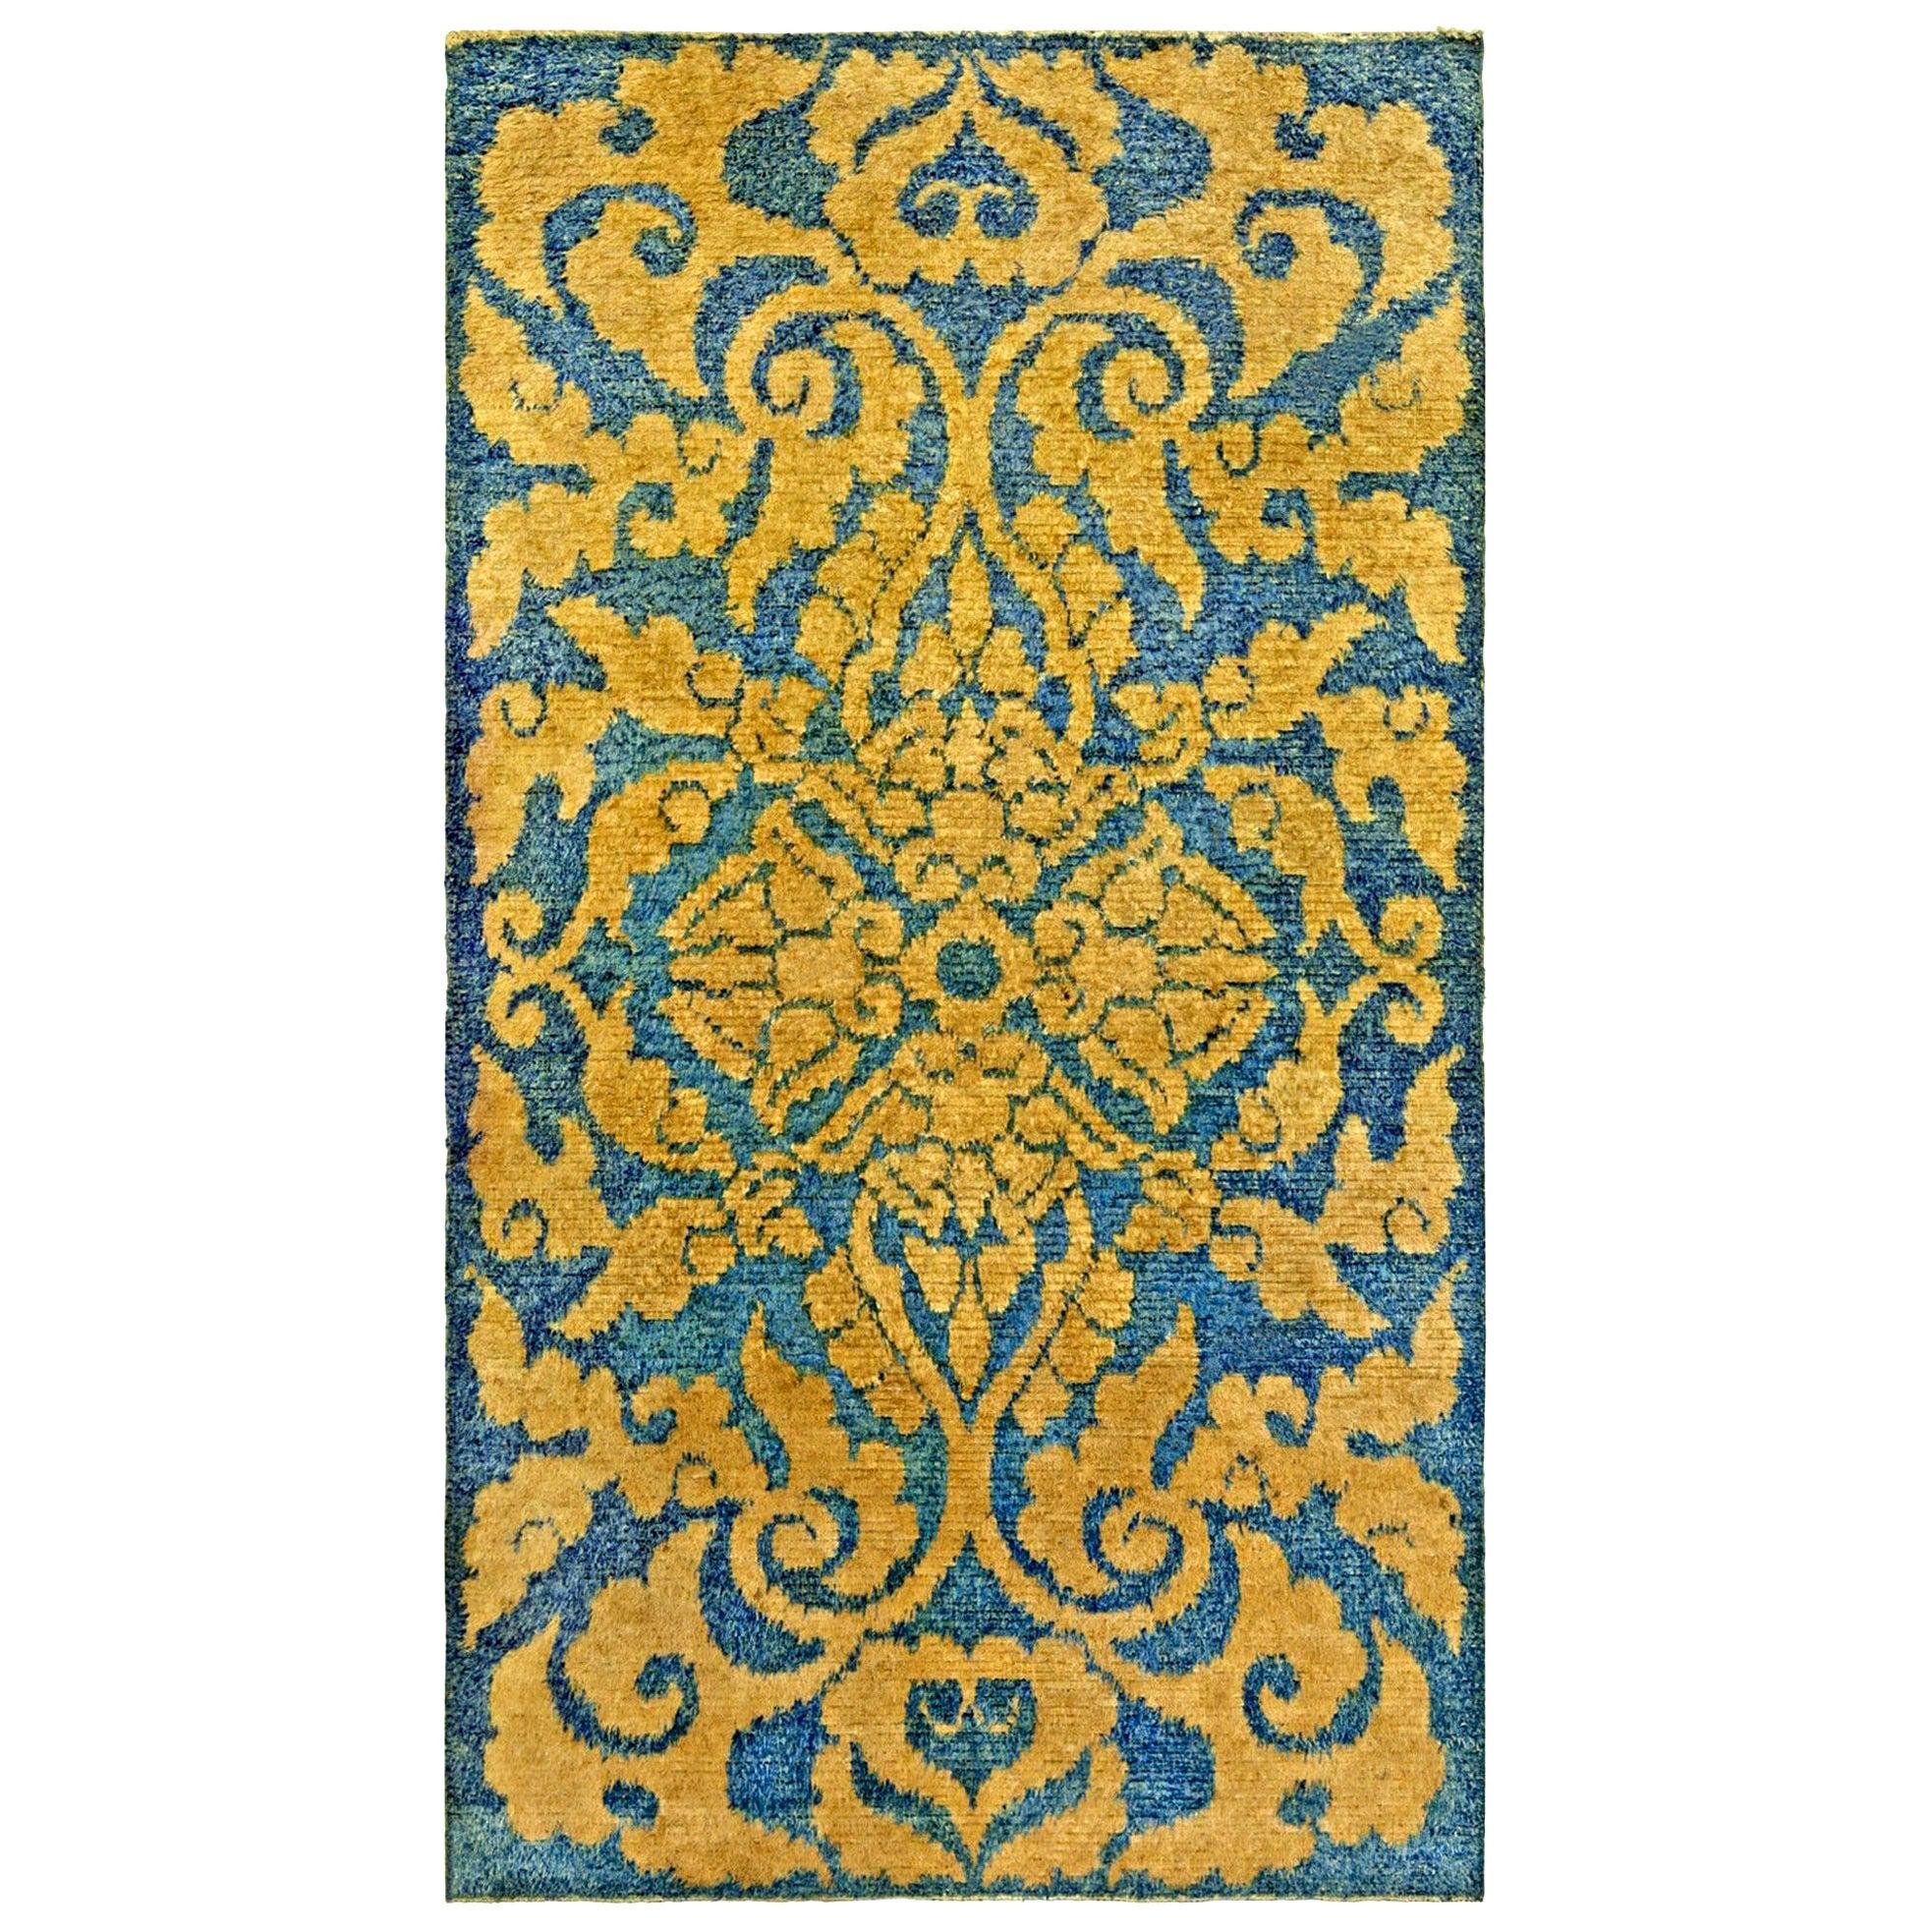 Mid-20th Century Floral Blue and Yellow Chinese Handmade Wool Rug